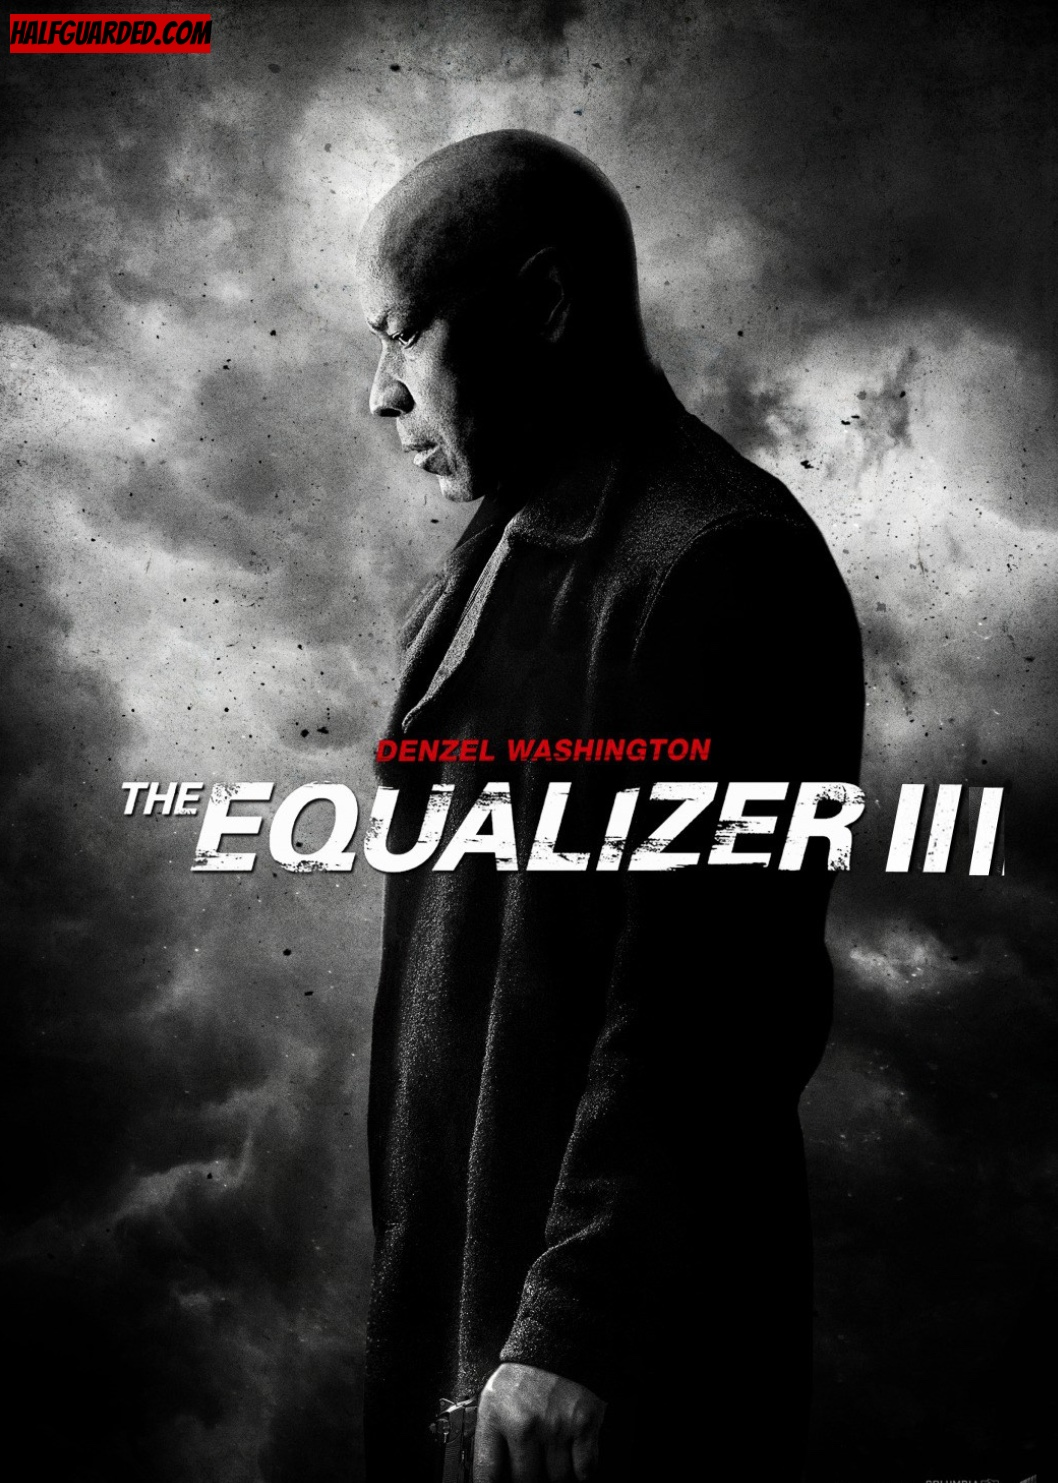 The Equalizer 3 (2021) RUMORS, Plot, Cast, and Release Date News